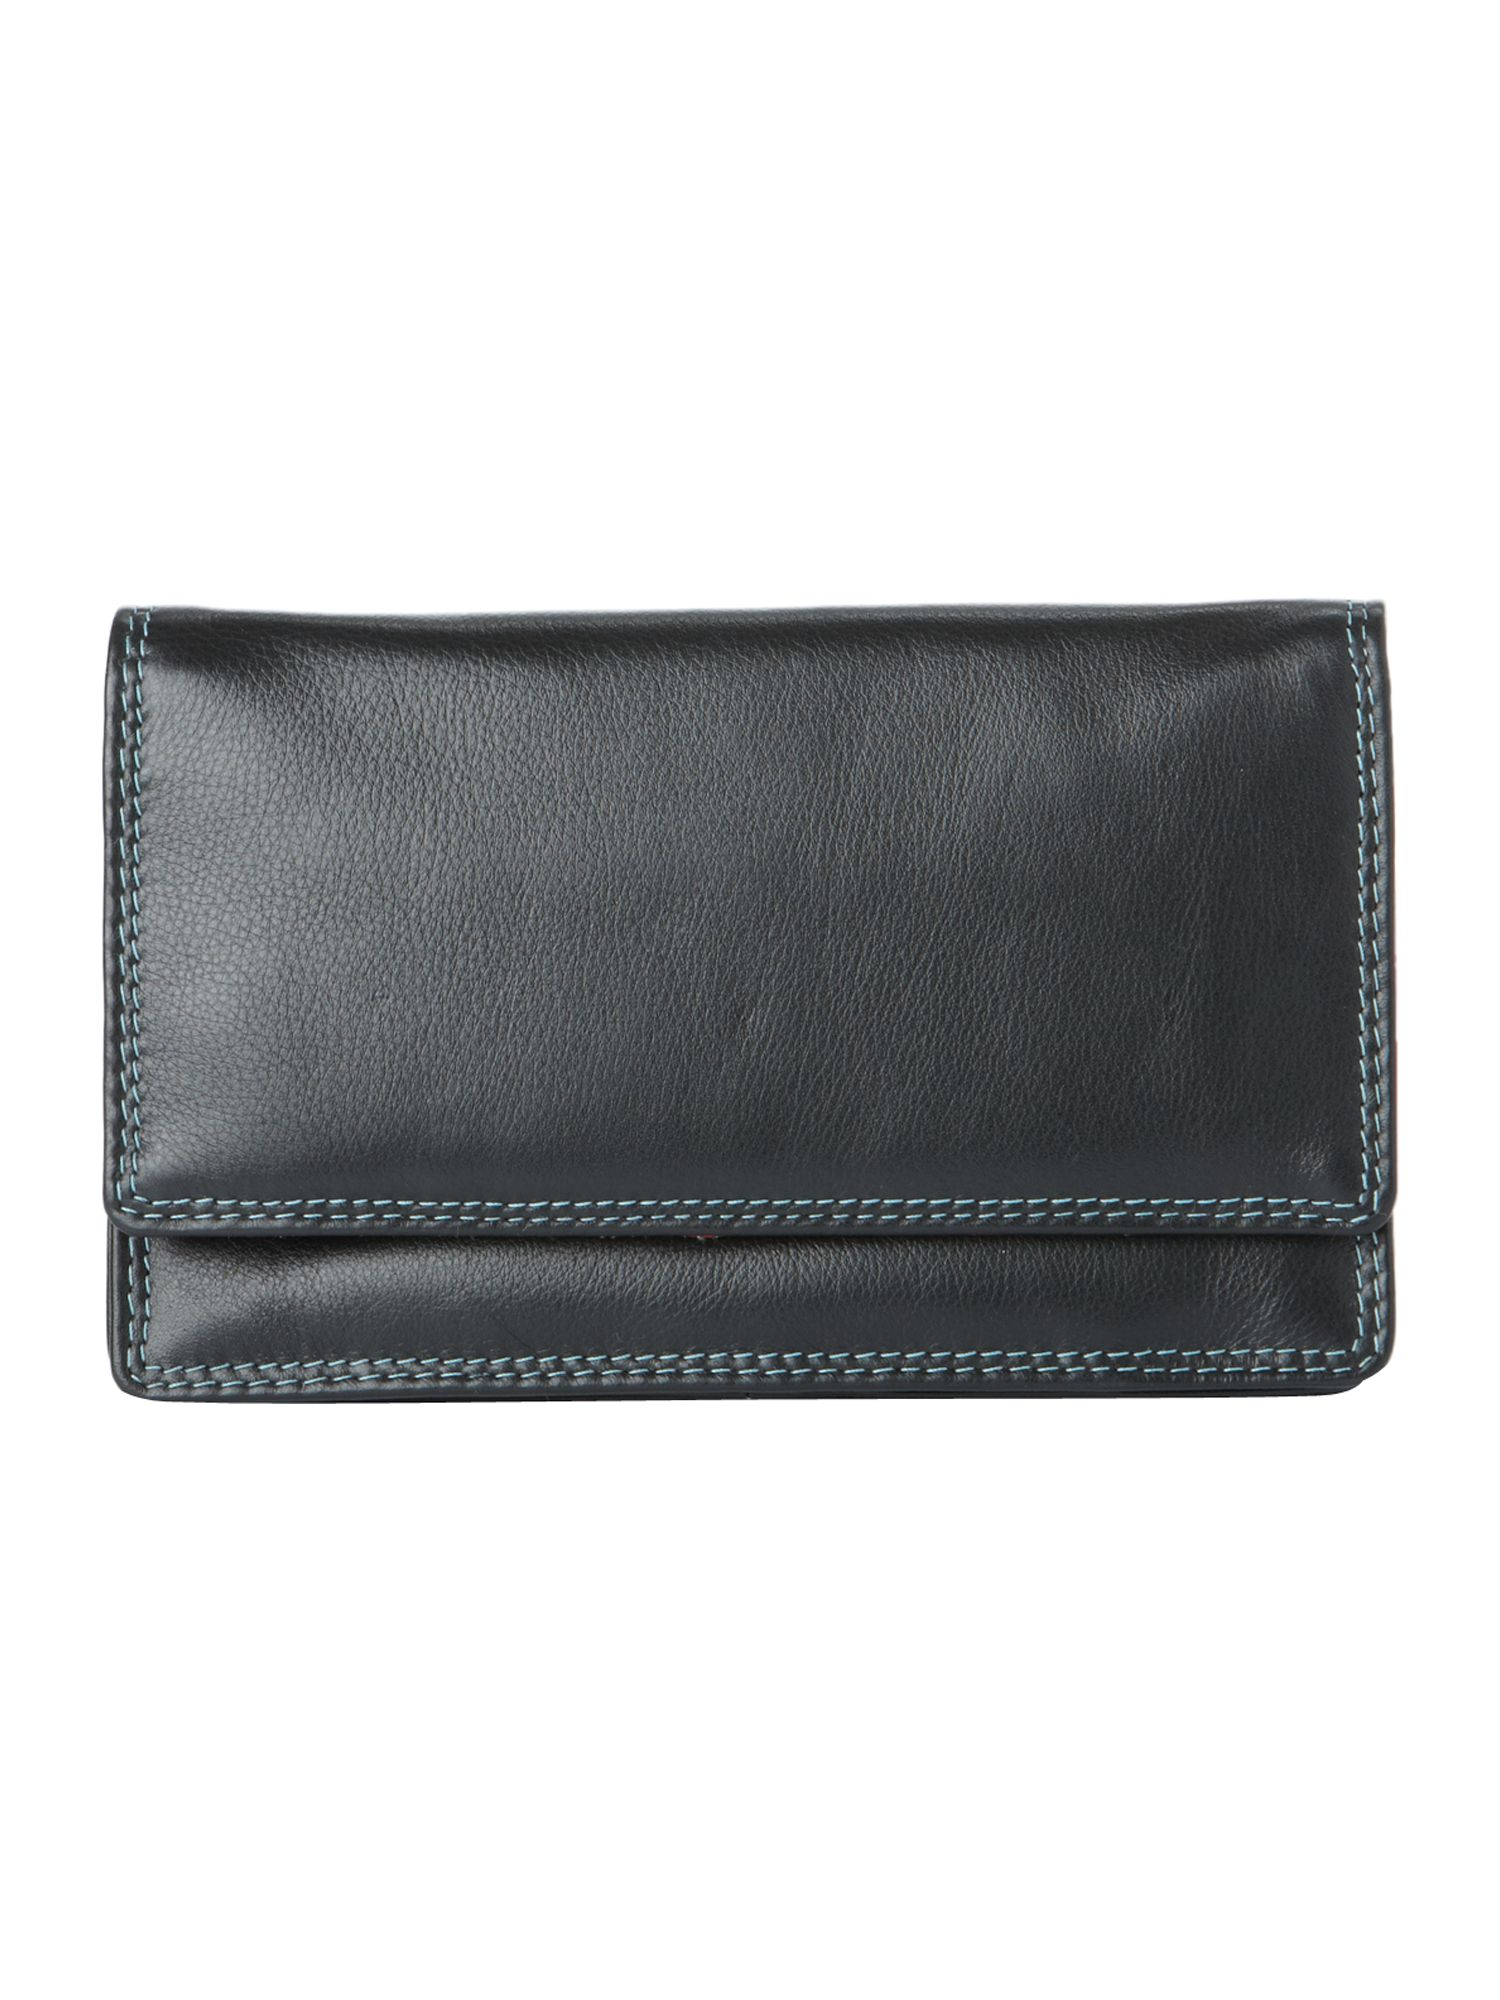 Large flap over continental purse